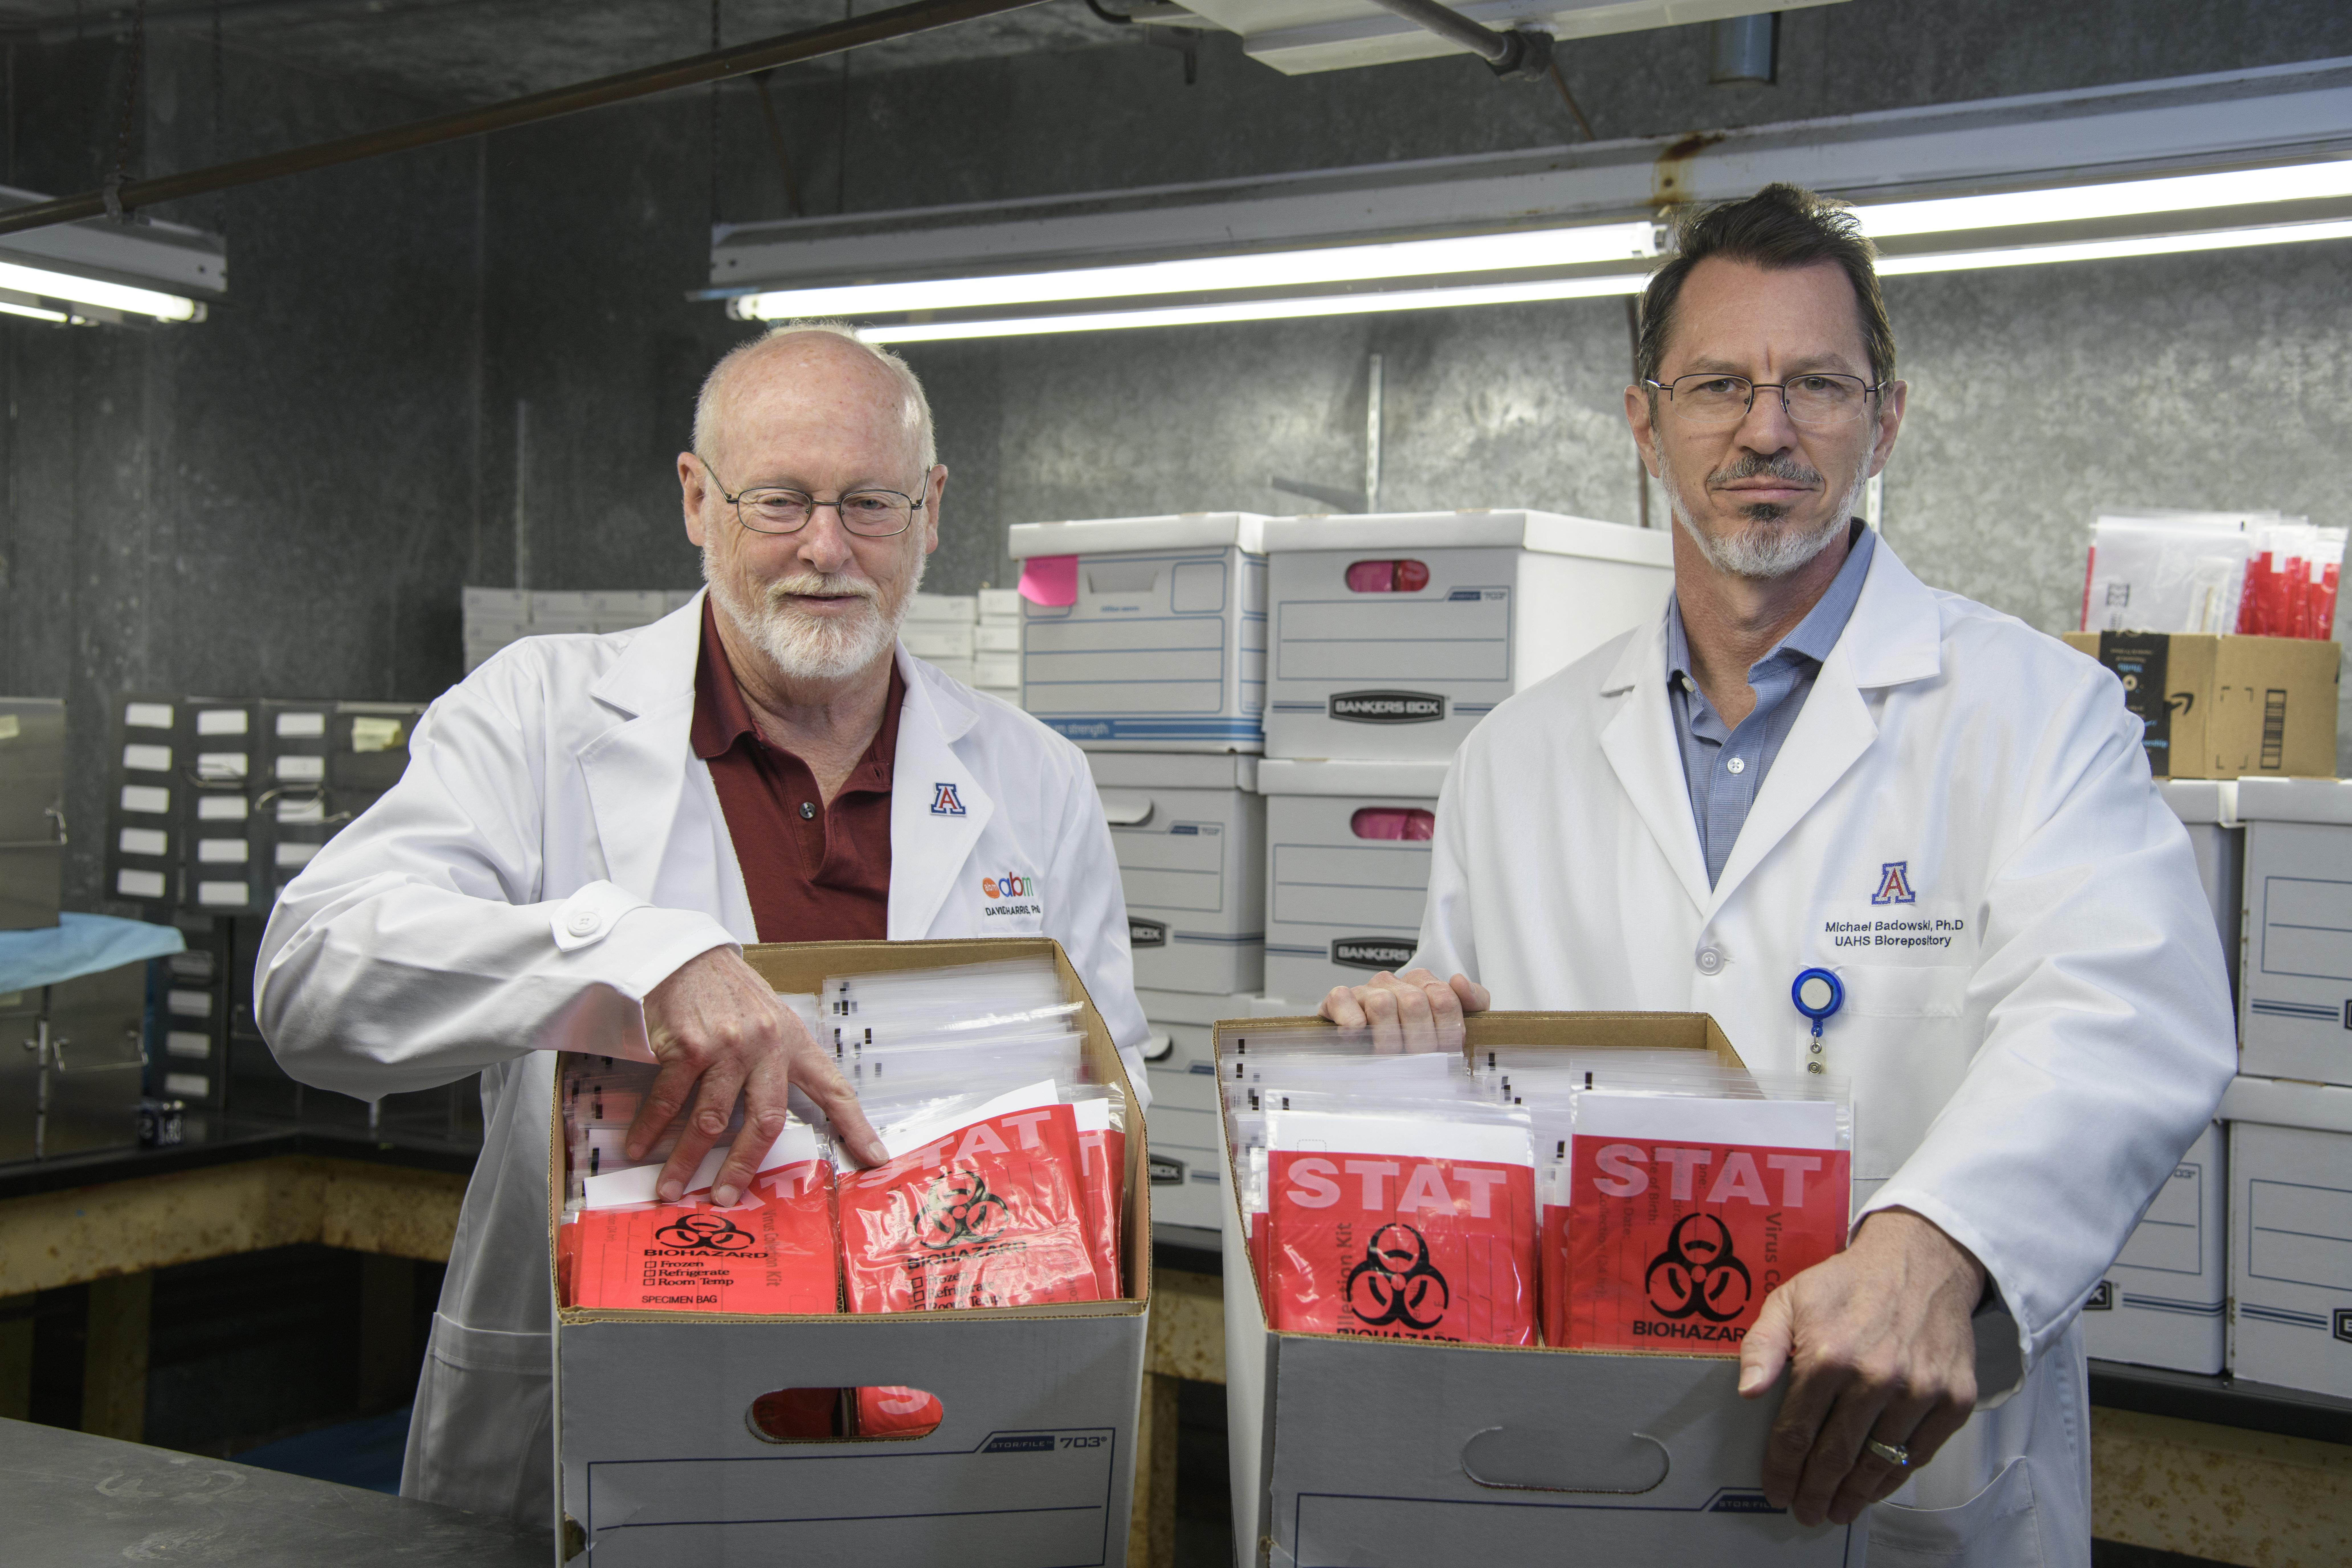 David Harris, PhD, MS, director of the University of Arizona Biorepository, and Michael Bawdowski, PhD, associate research scientist, hold boxes of COVID-19 sample collection kits ready for use in health care facilities.